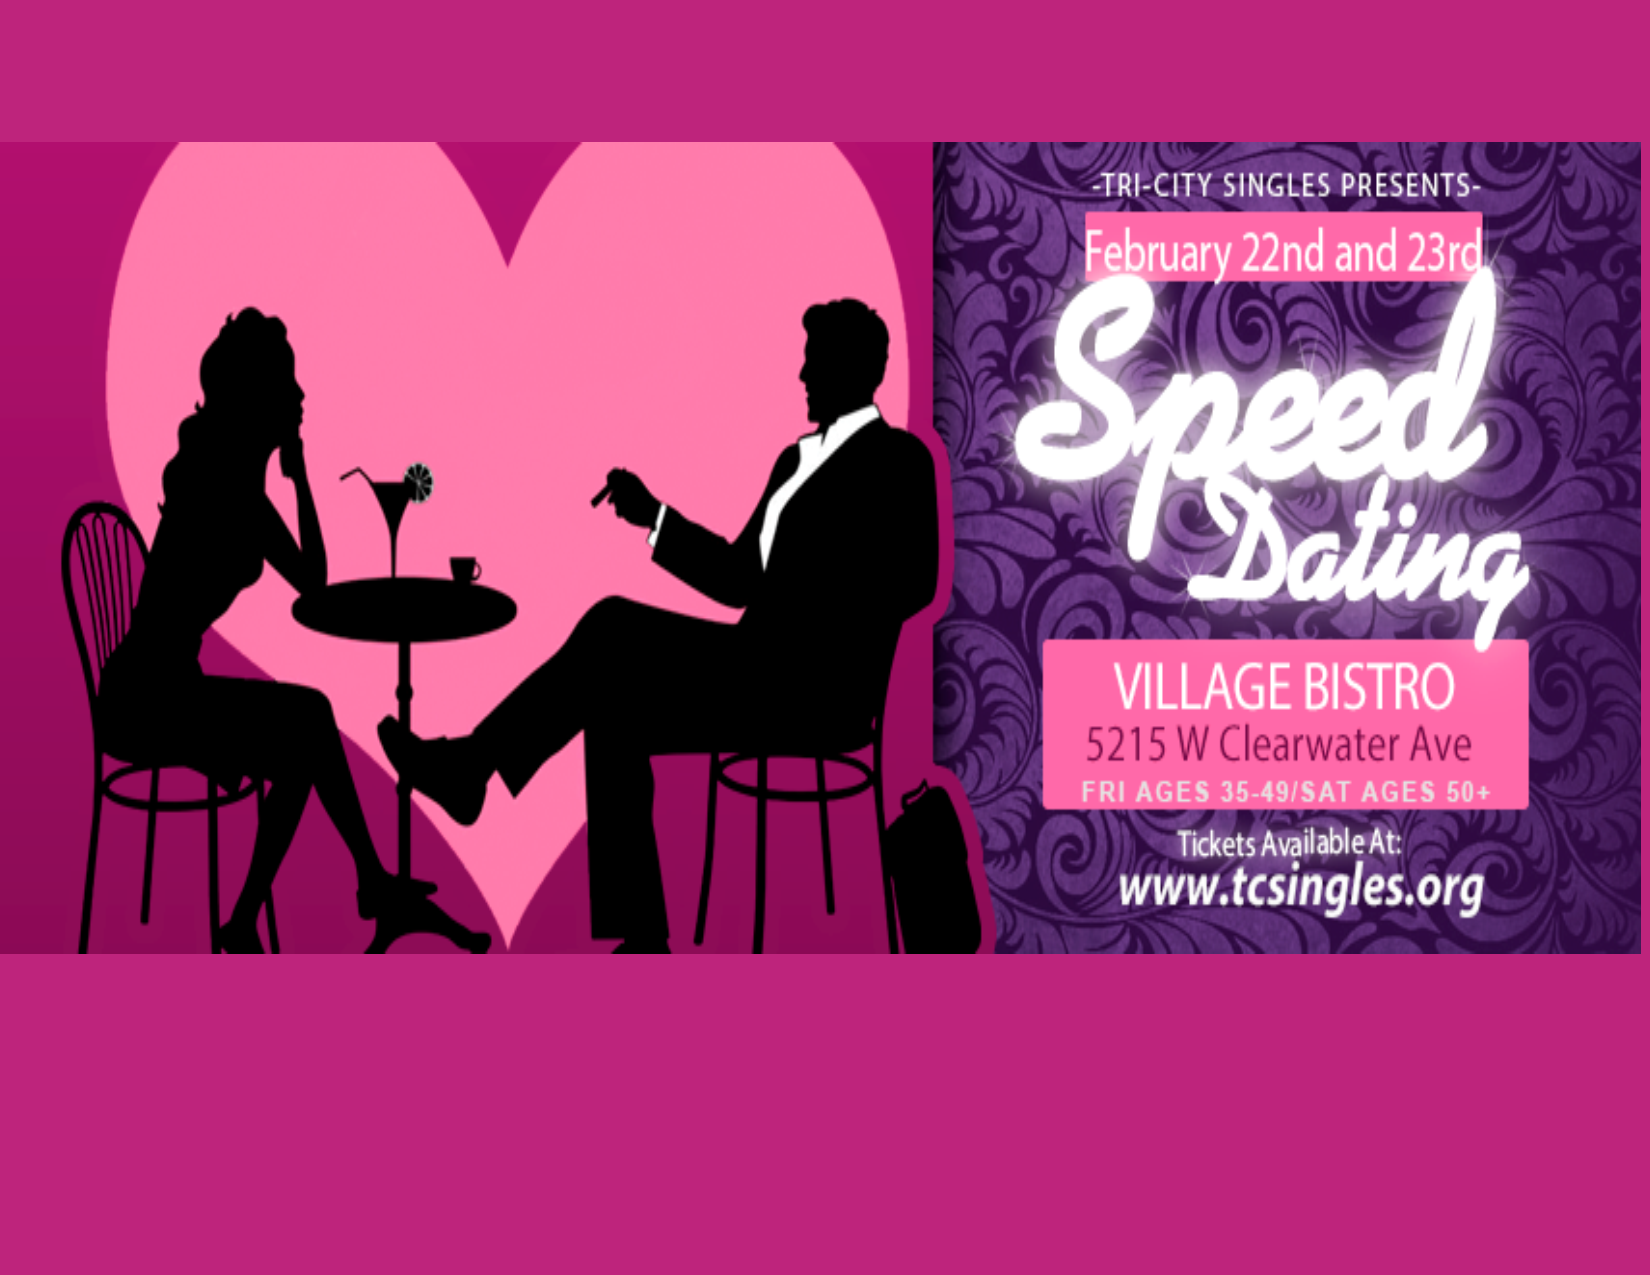 Speed Dating is Back! - Join us for speed Dating.Friday February 22nd for ages 30-45.Saturday February 23rd for ages 45+We will be at Village Bistro, 5215 W Clearwater Ave #114, Kennewick, WA 99336Time: 7:00 sharp start time. Do Not be late!Tickets must be purchased by 6:00 pm Thursday February 21st. We reserve the right to cancel this event if the minimum number of participants have not registered. In the case of cancelation, the full amount of the ticket purchase will be refunded.